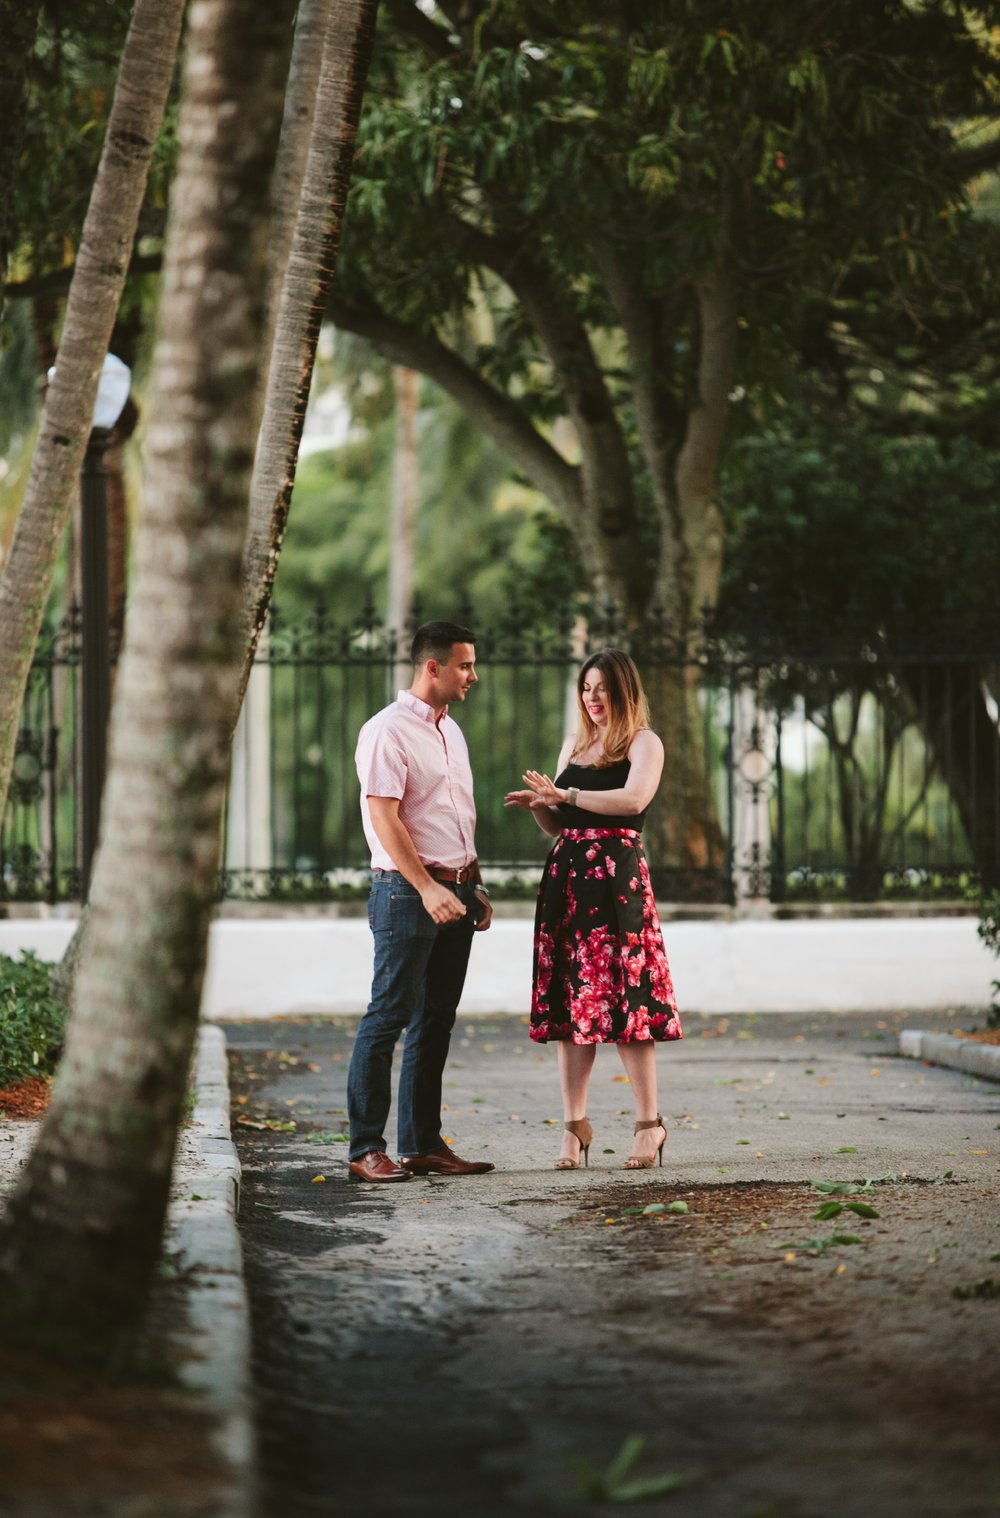 Ida + Danny Surprise Proposal Engagement Shoot at Flagler Museum Palm Beach4.jpg